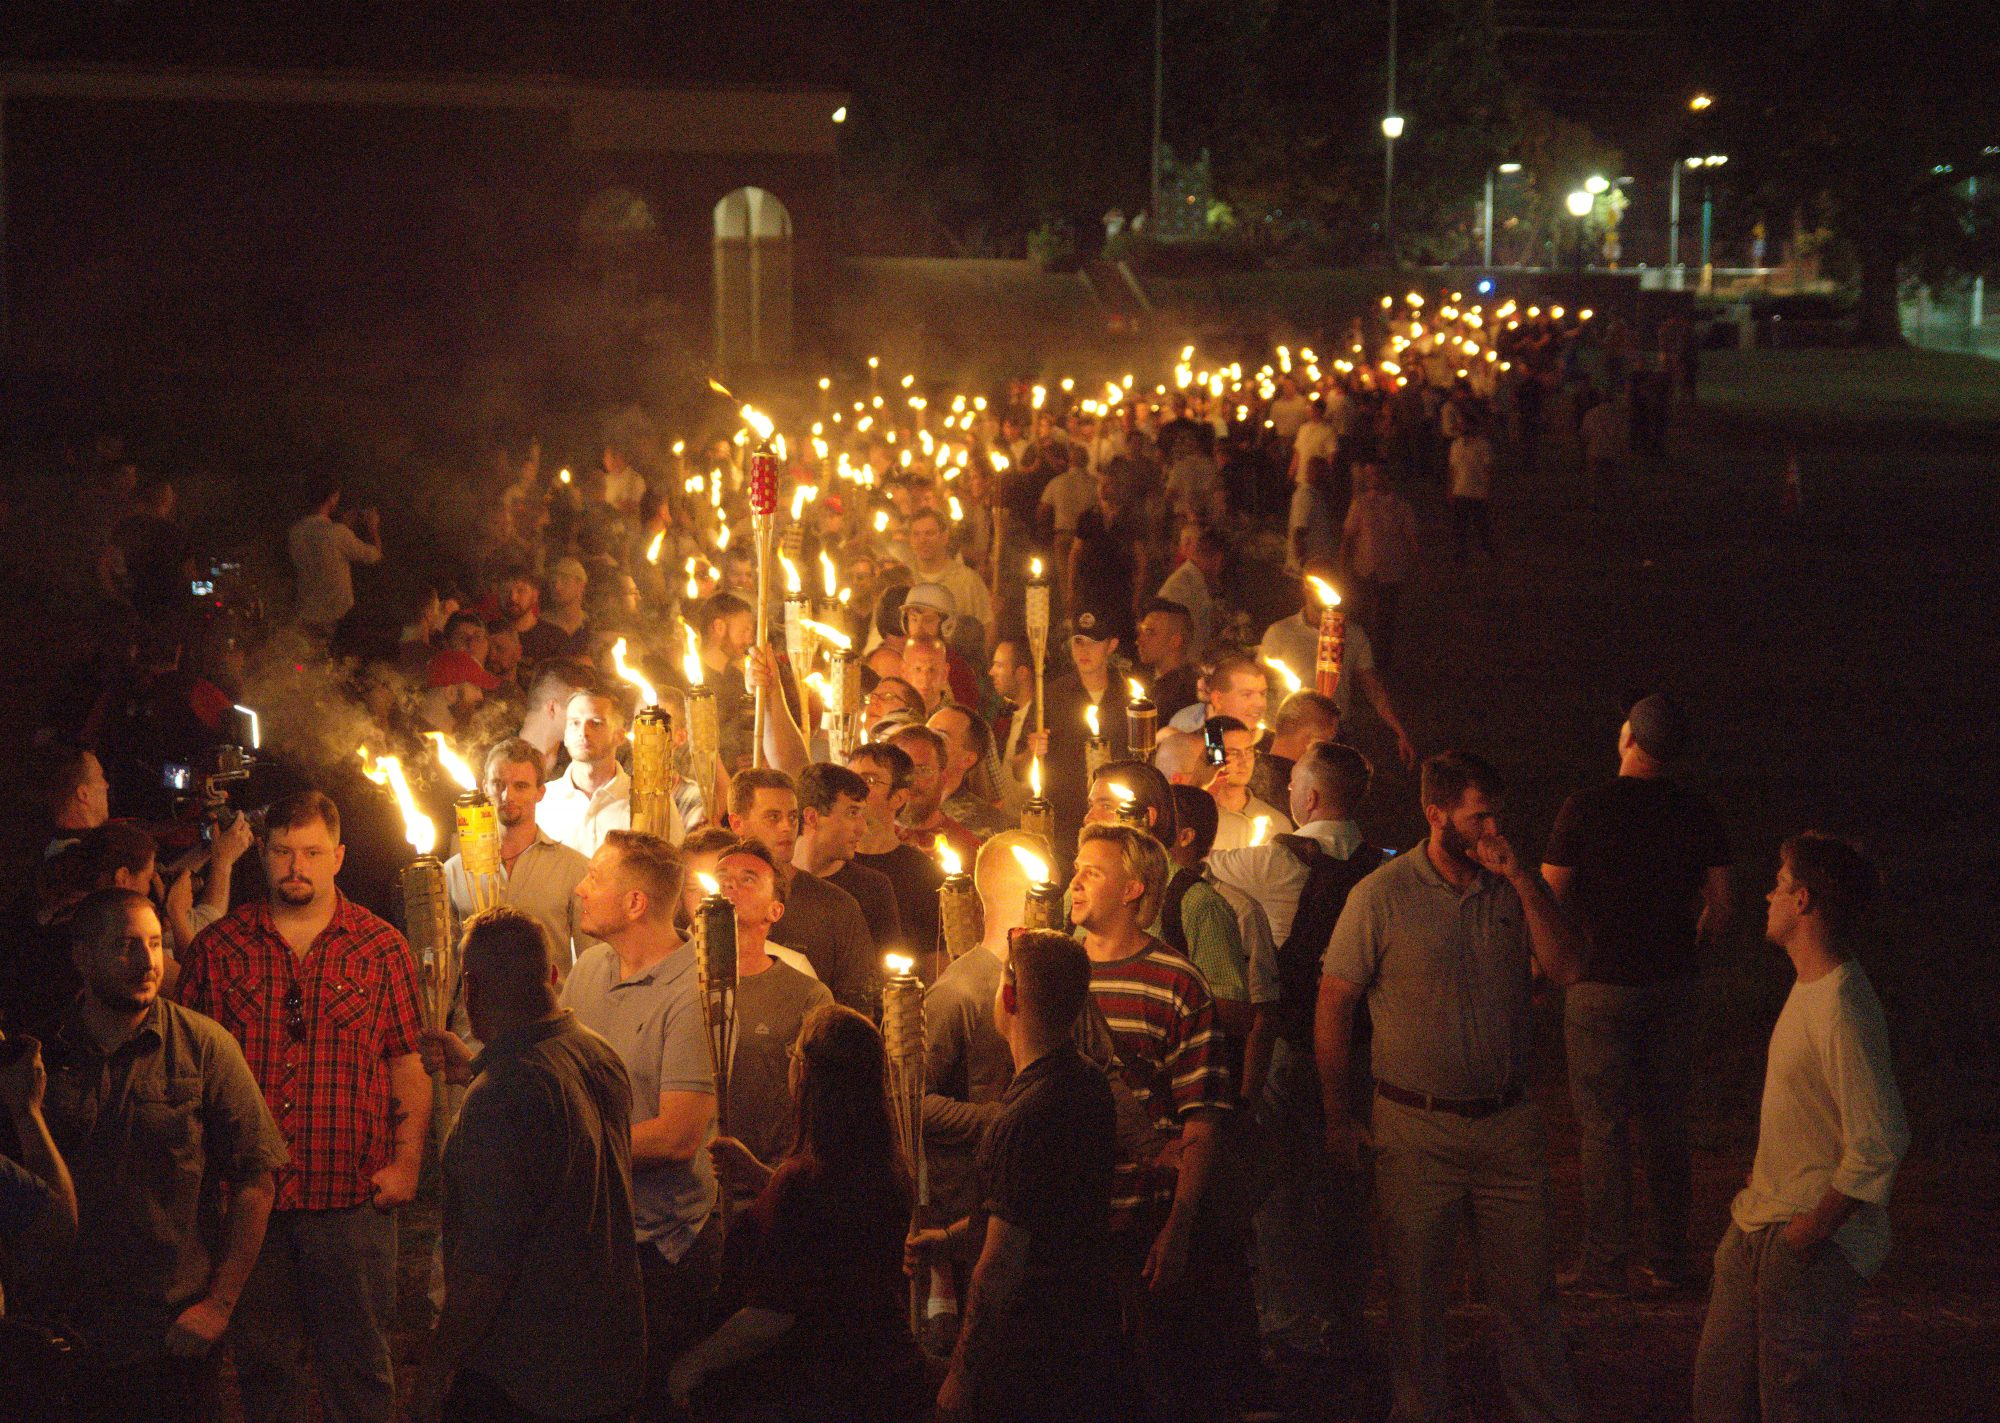 """White nationalists carry torches on the grounds of the University of Virginia, on the eve of a planned """"Unite the Right"""" rally in Charlottesville, Virginia, on Aug. 11, 2017. Photo by Alejandro Alvarez/News2Share via Reuters"""